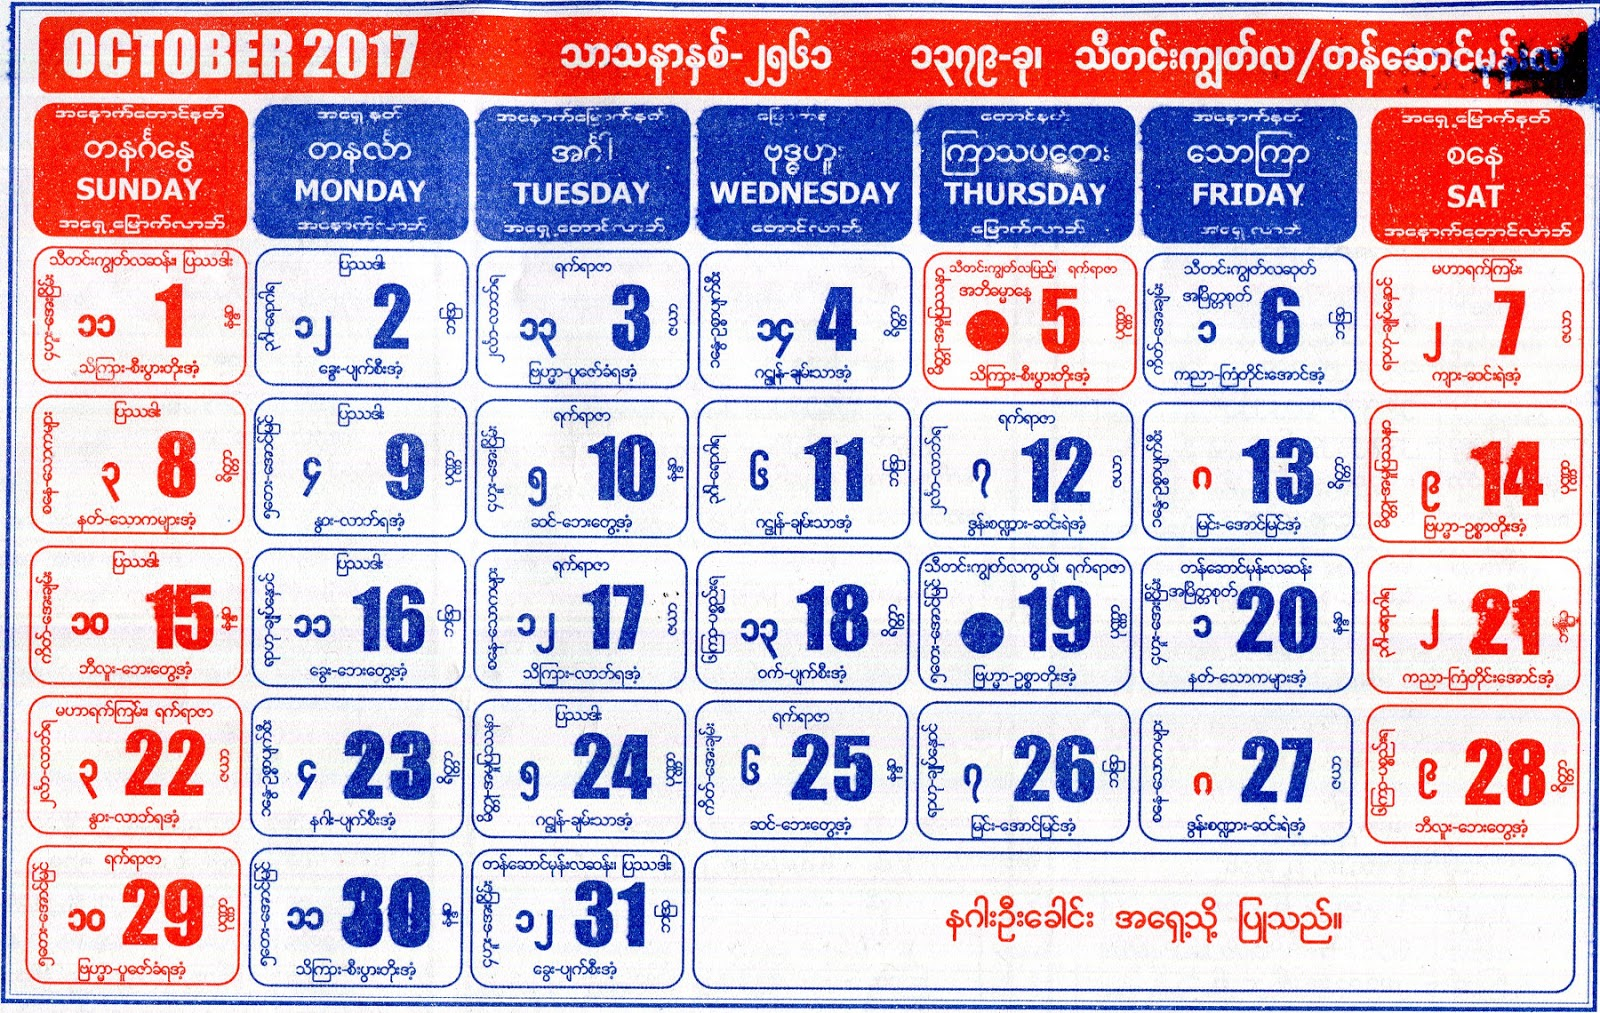 Calendar For Year 2009 United Kingdom Time And Date Myanmar Calendar 1500 Years Cool Emerald 2017